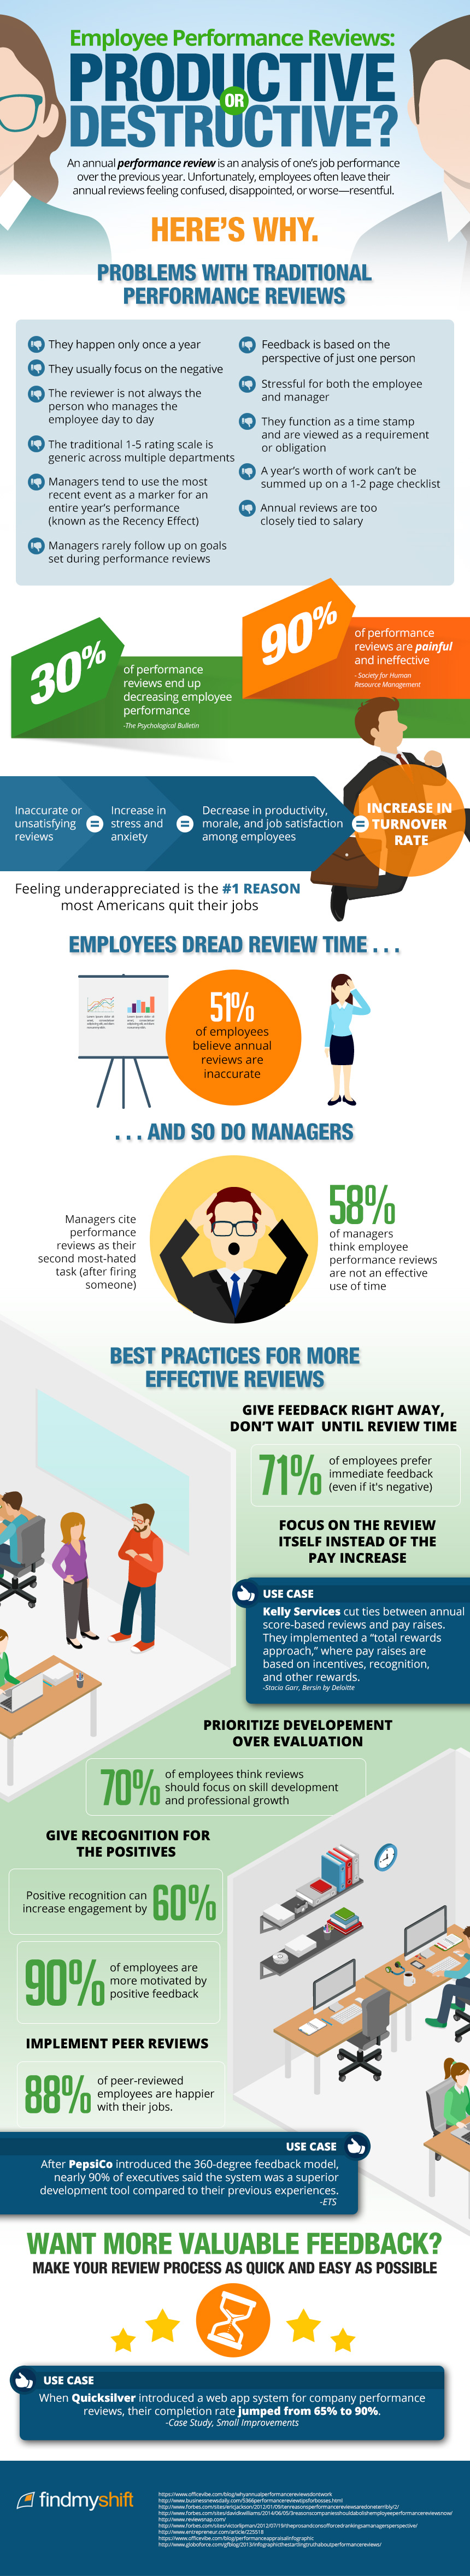 Employee performance reviews- productive or destructive-infographic